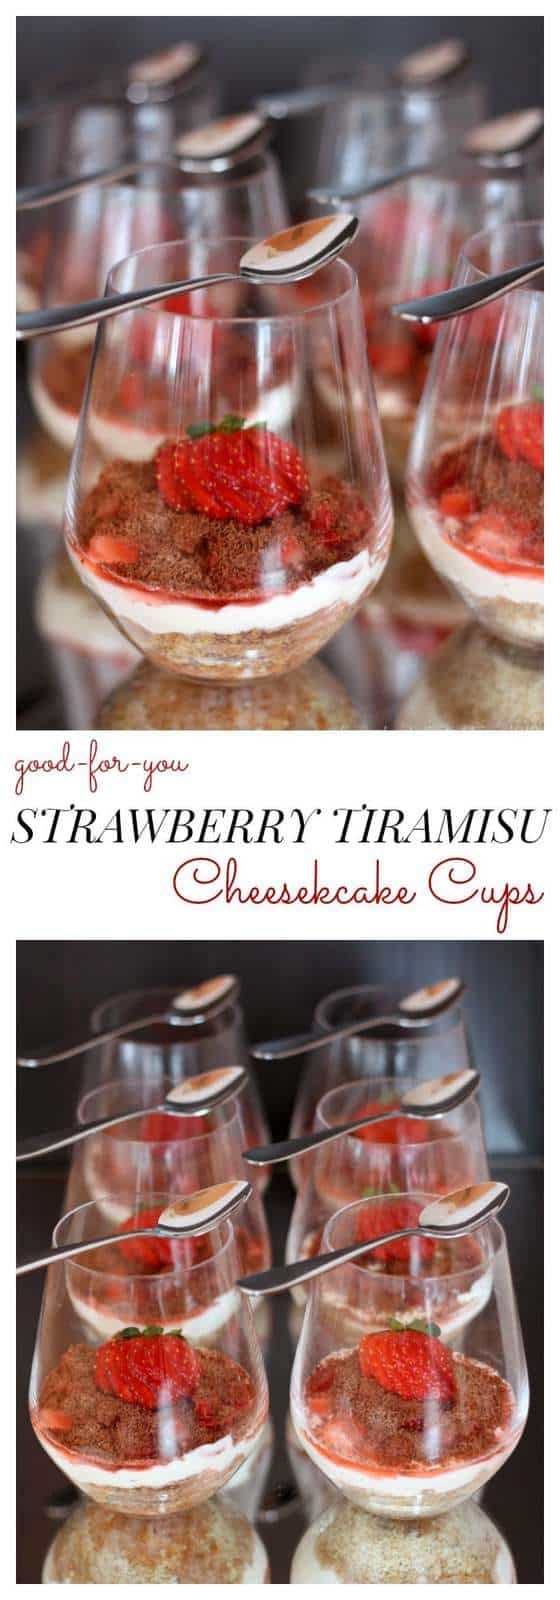 No-Bake Strawberry Tiramisu Cheesecake Cups - a healthy dessert tastes indulgent. Grain free, gluten free, and make with Greek yogurt! | cupcakesandkalechips.com